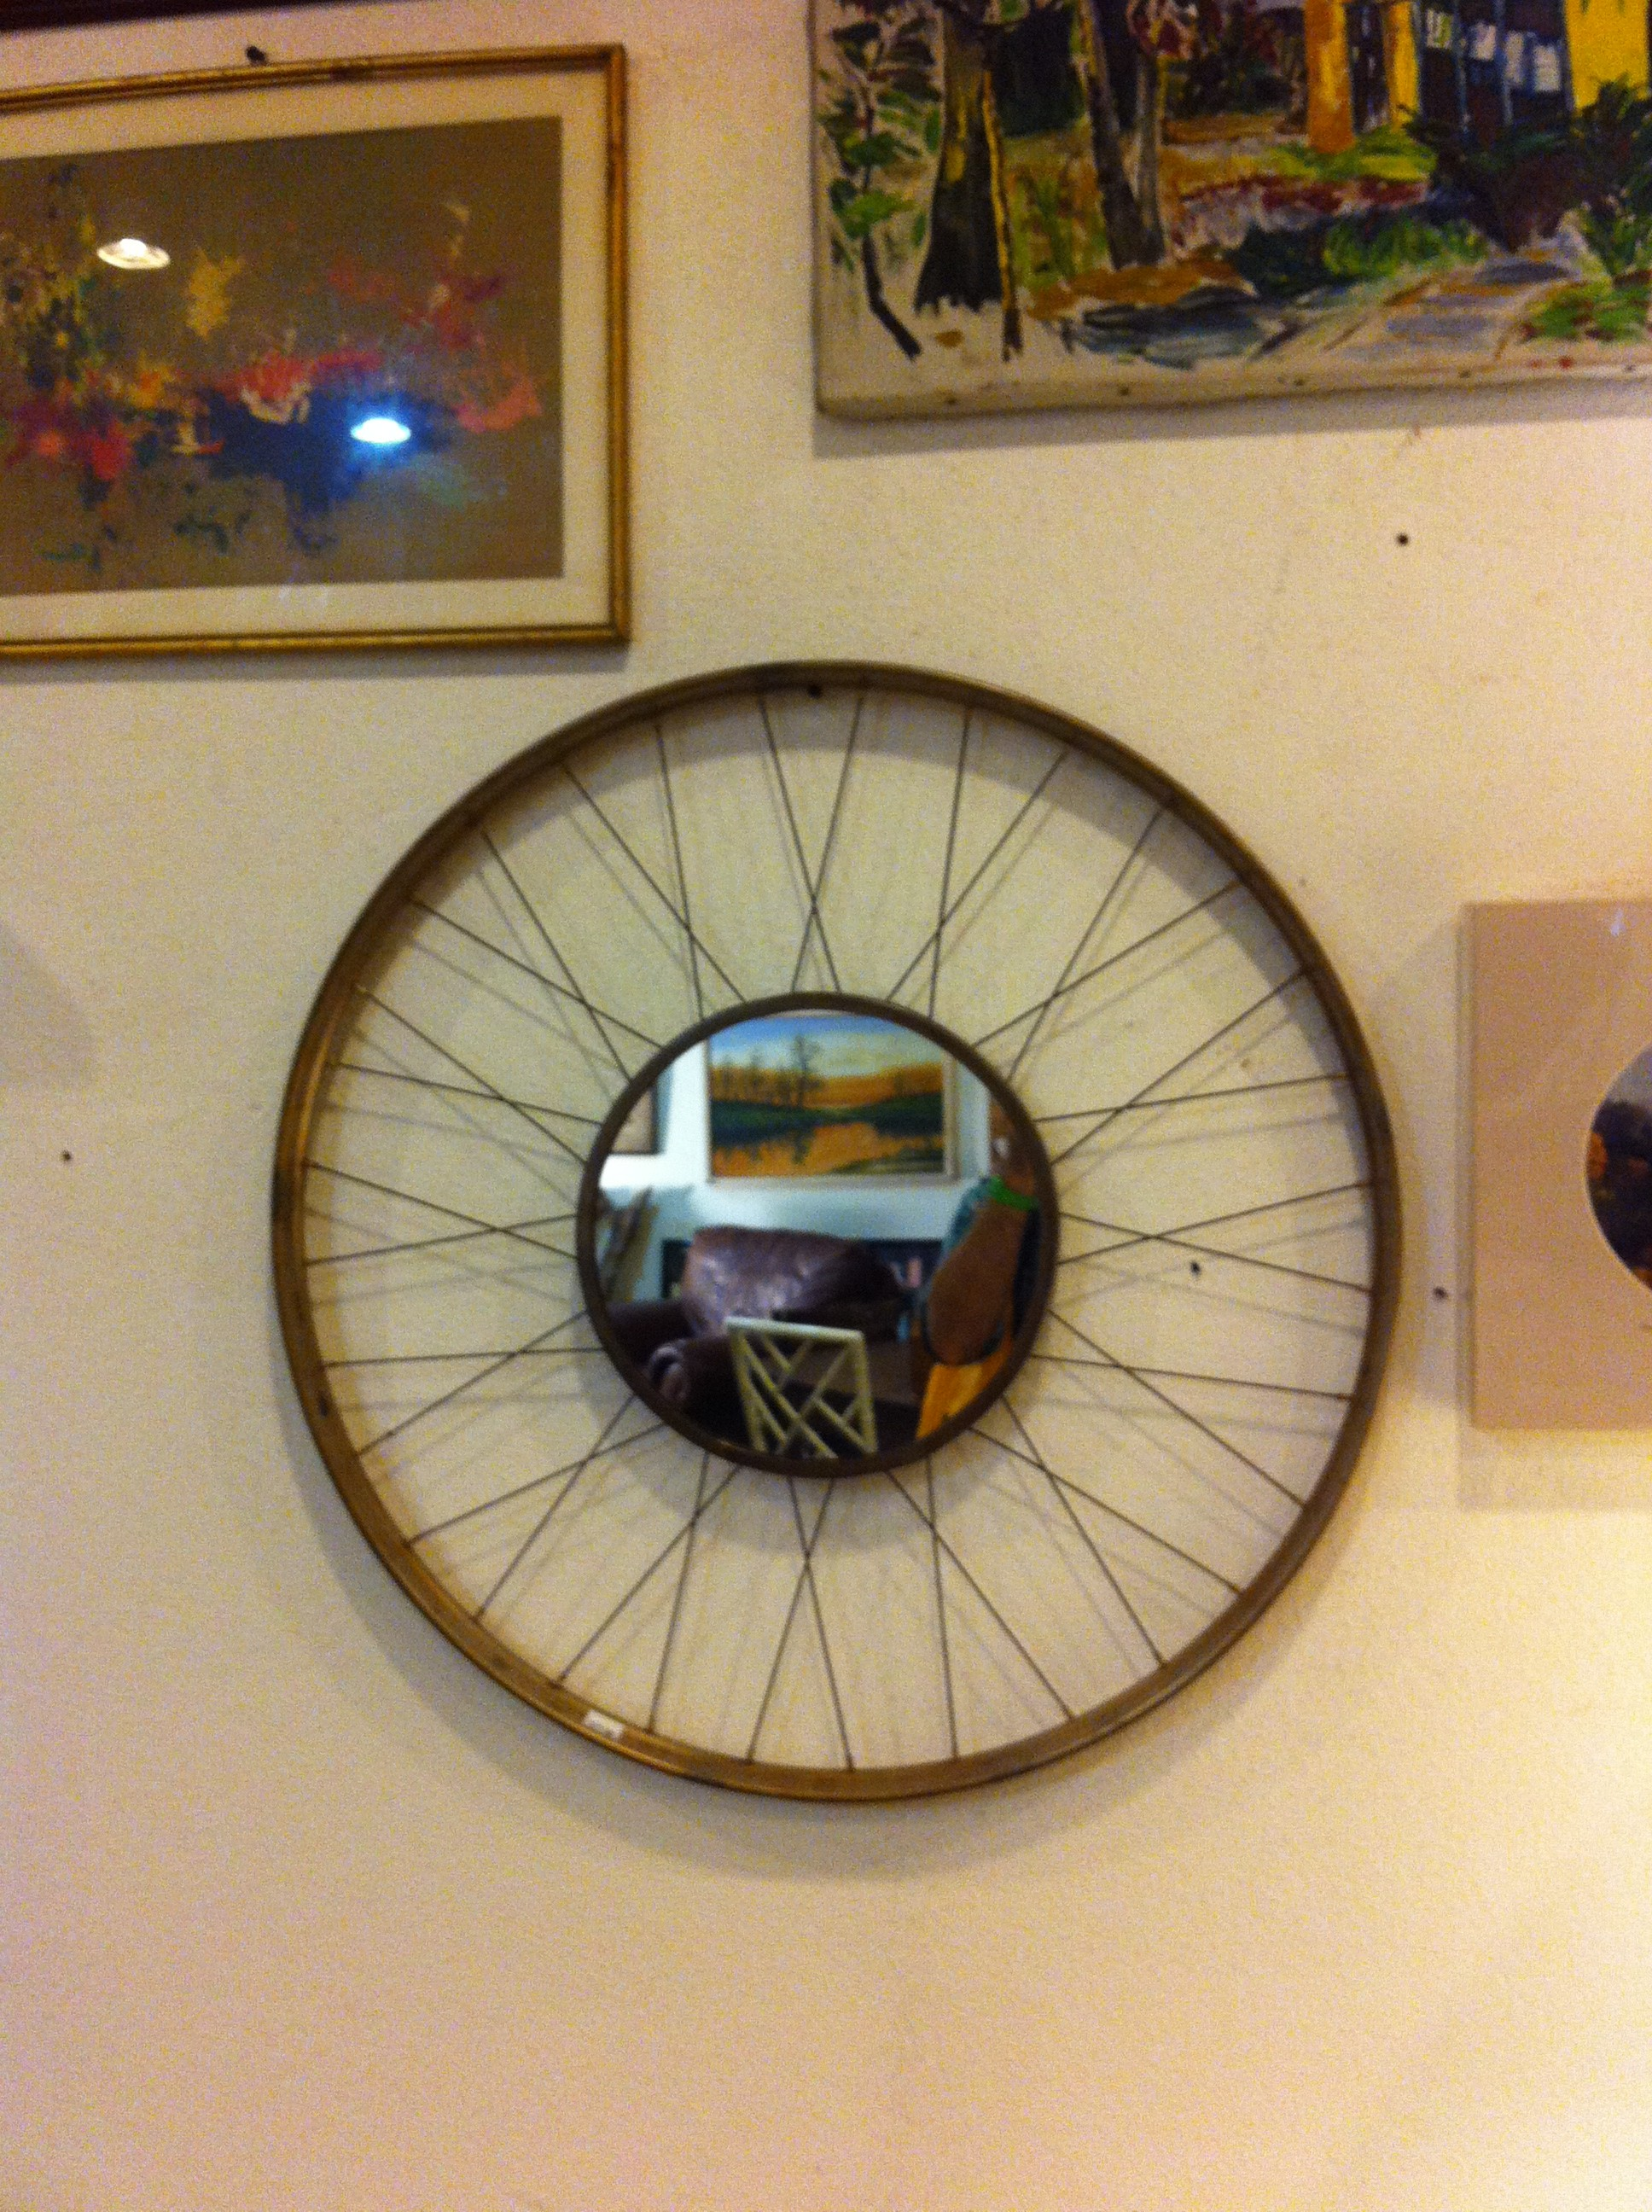 A pic of a bike rim turned into a mirror hanging on a wall